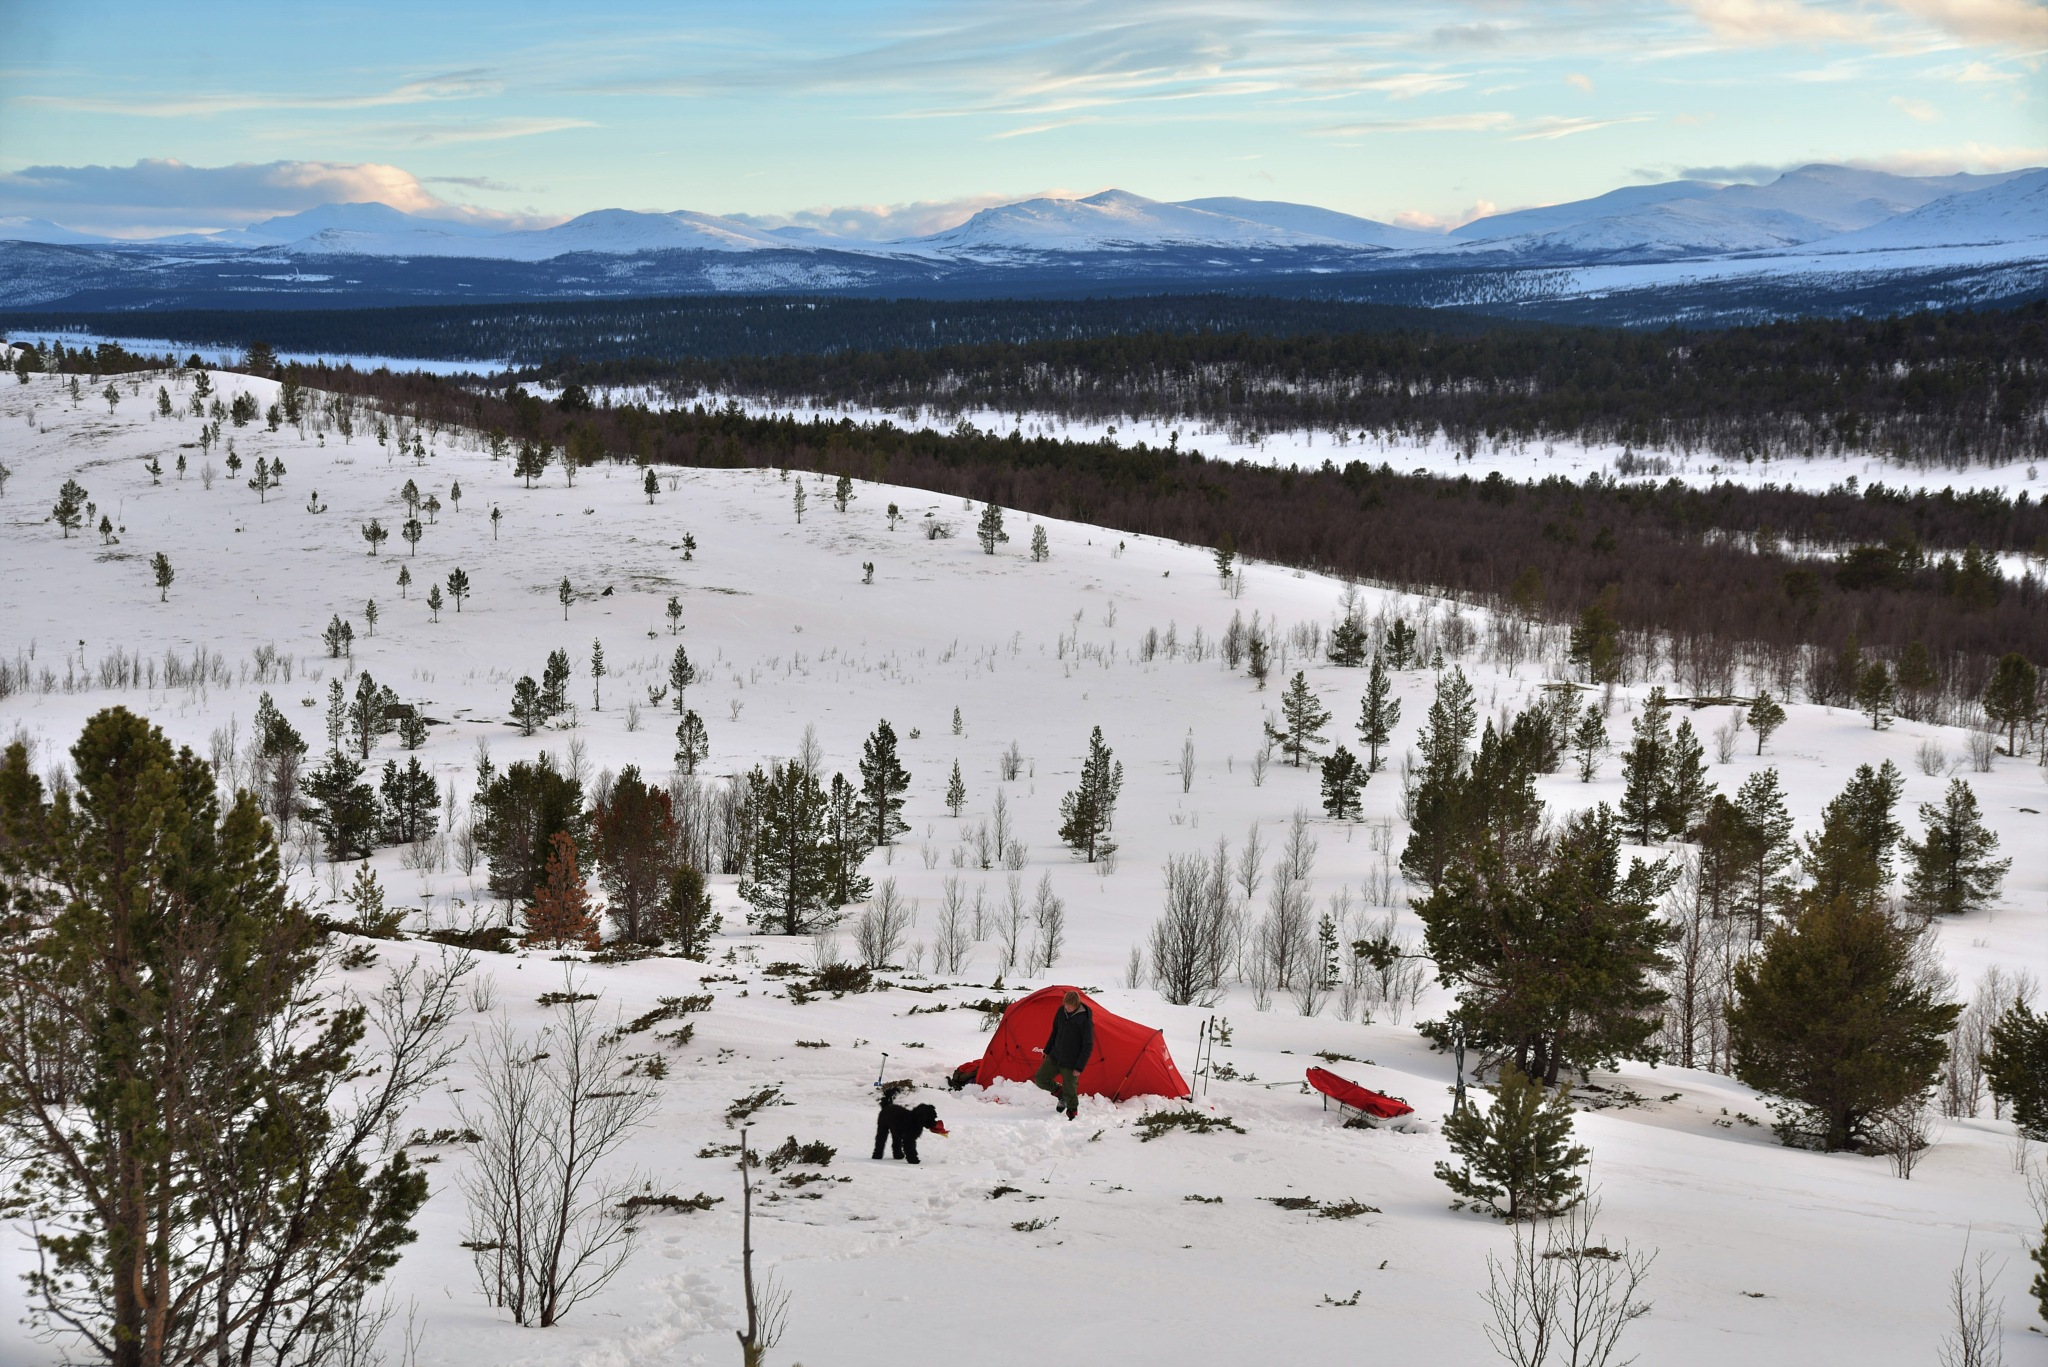 Another camp by E Pedersen